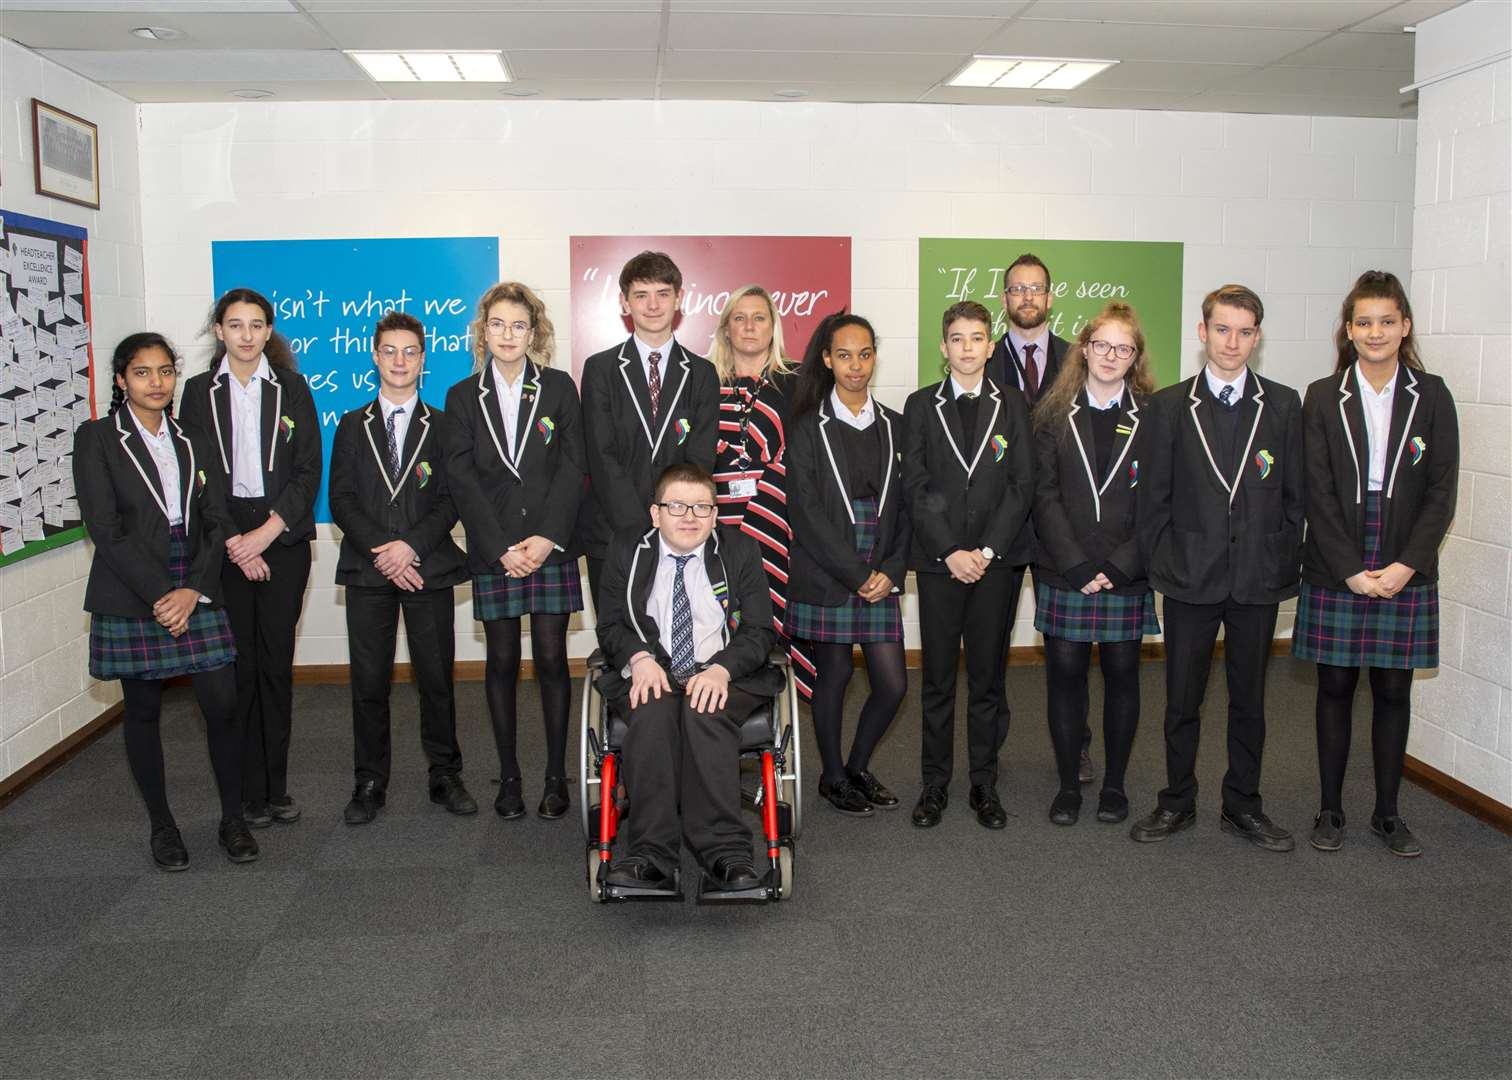 Stamford Welland Academy prefects 2019 (7579343)